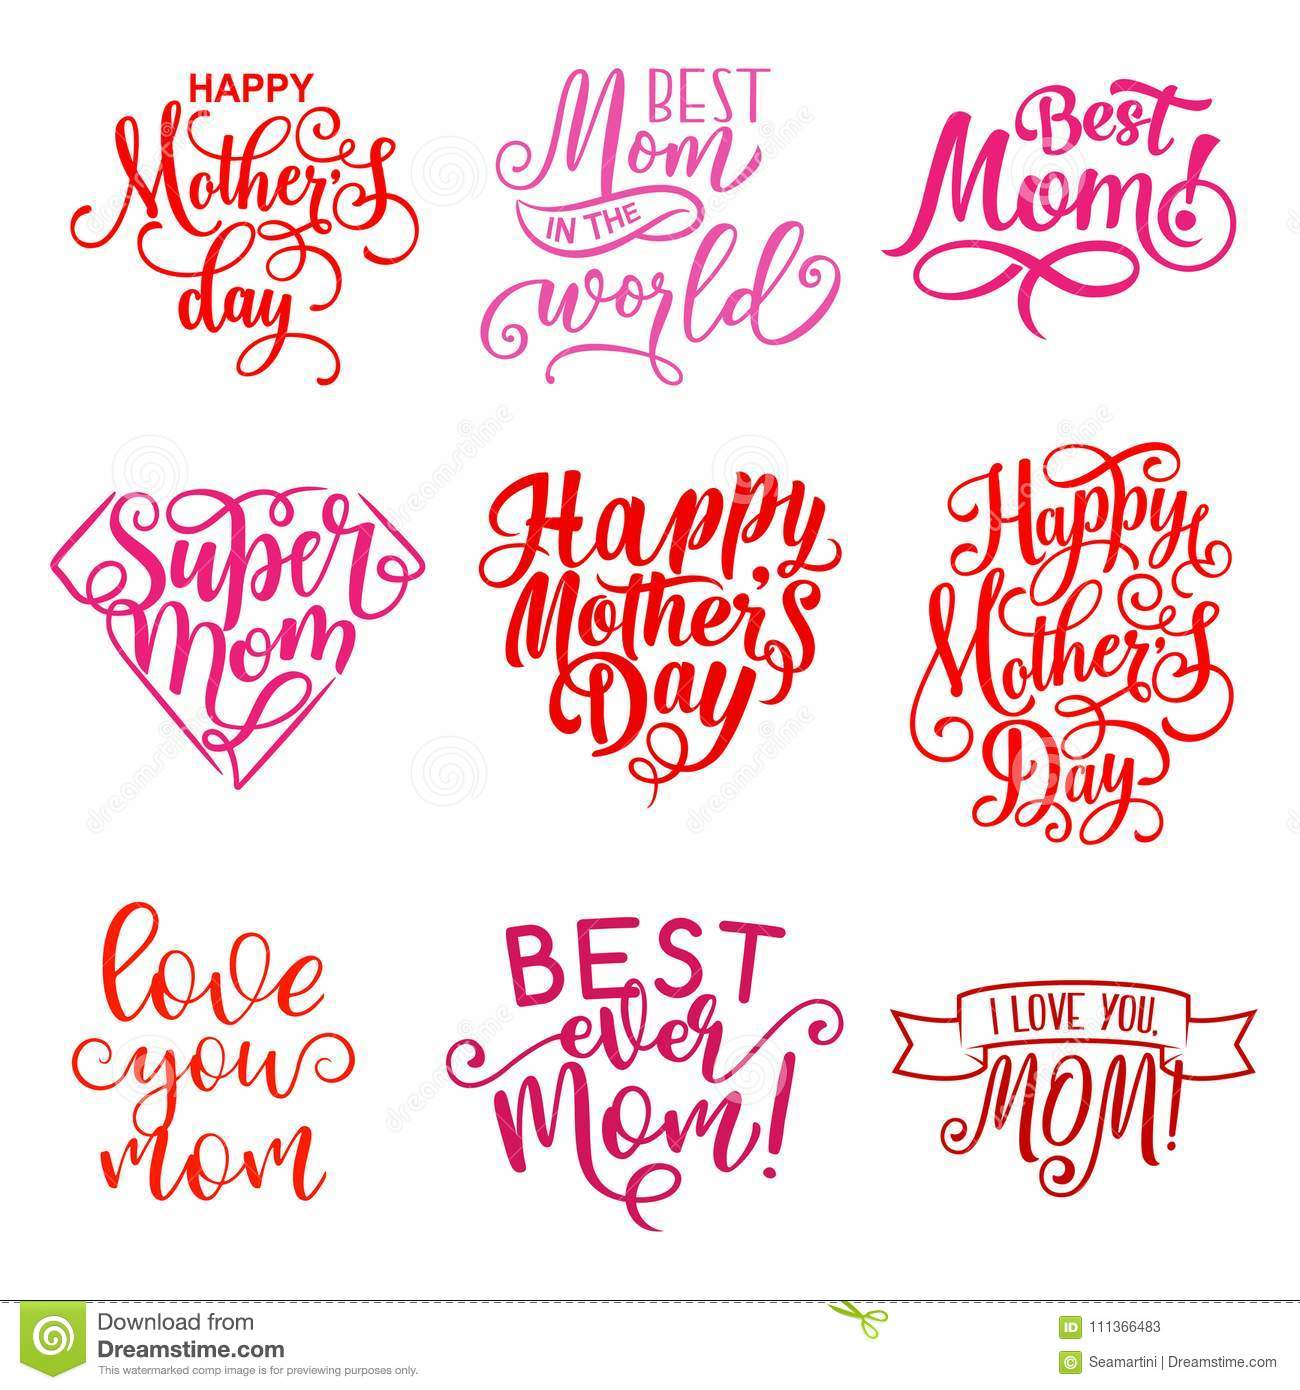 Vector mother day holiday greeting text icons stock vector vector mother day holiday greeting text icons m4hsunfo